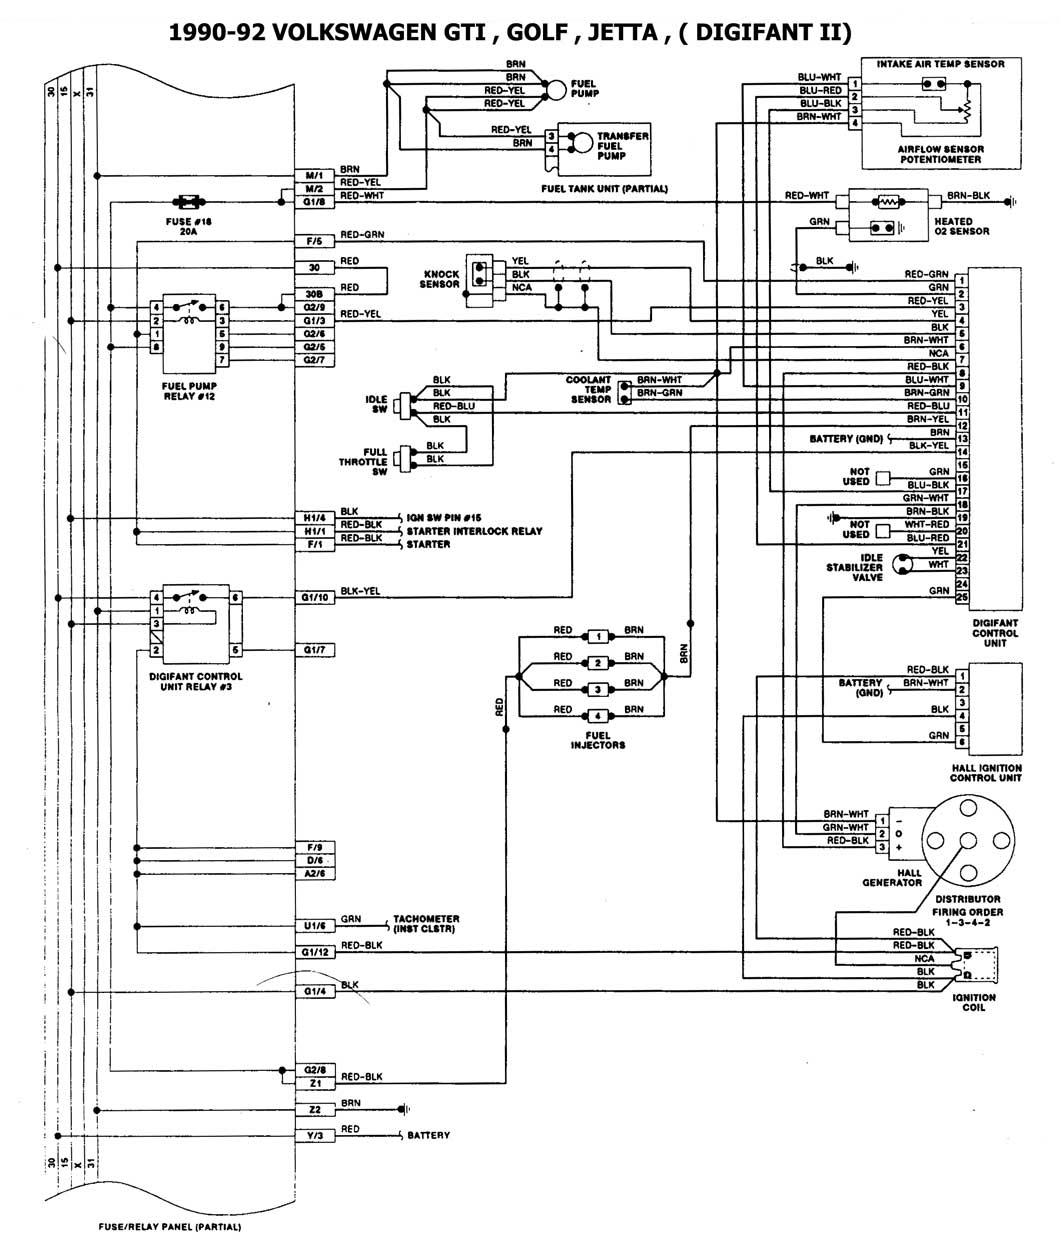 Vw Jettum Vr6 Wiring Diagram